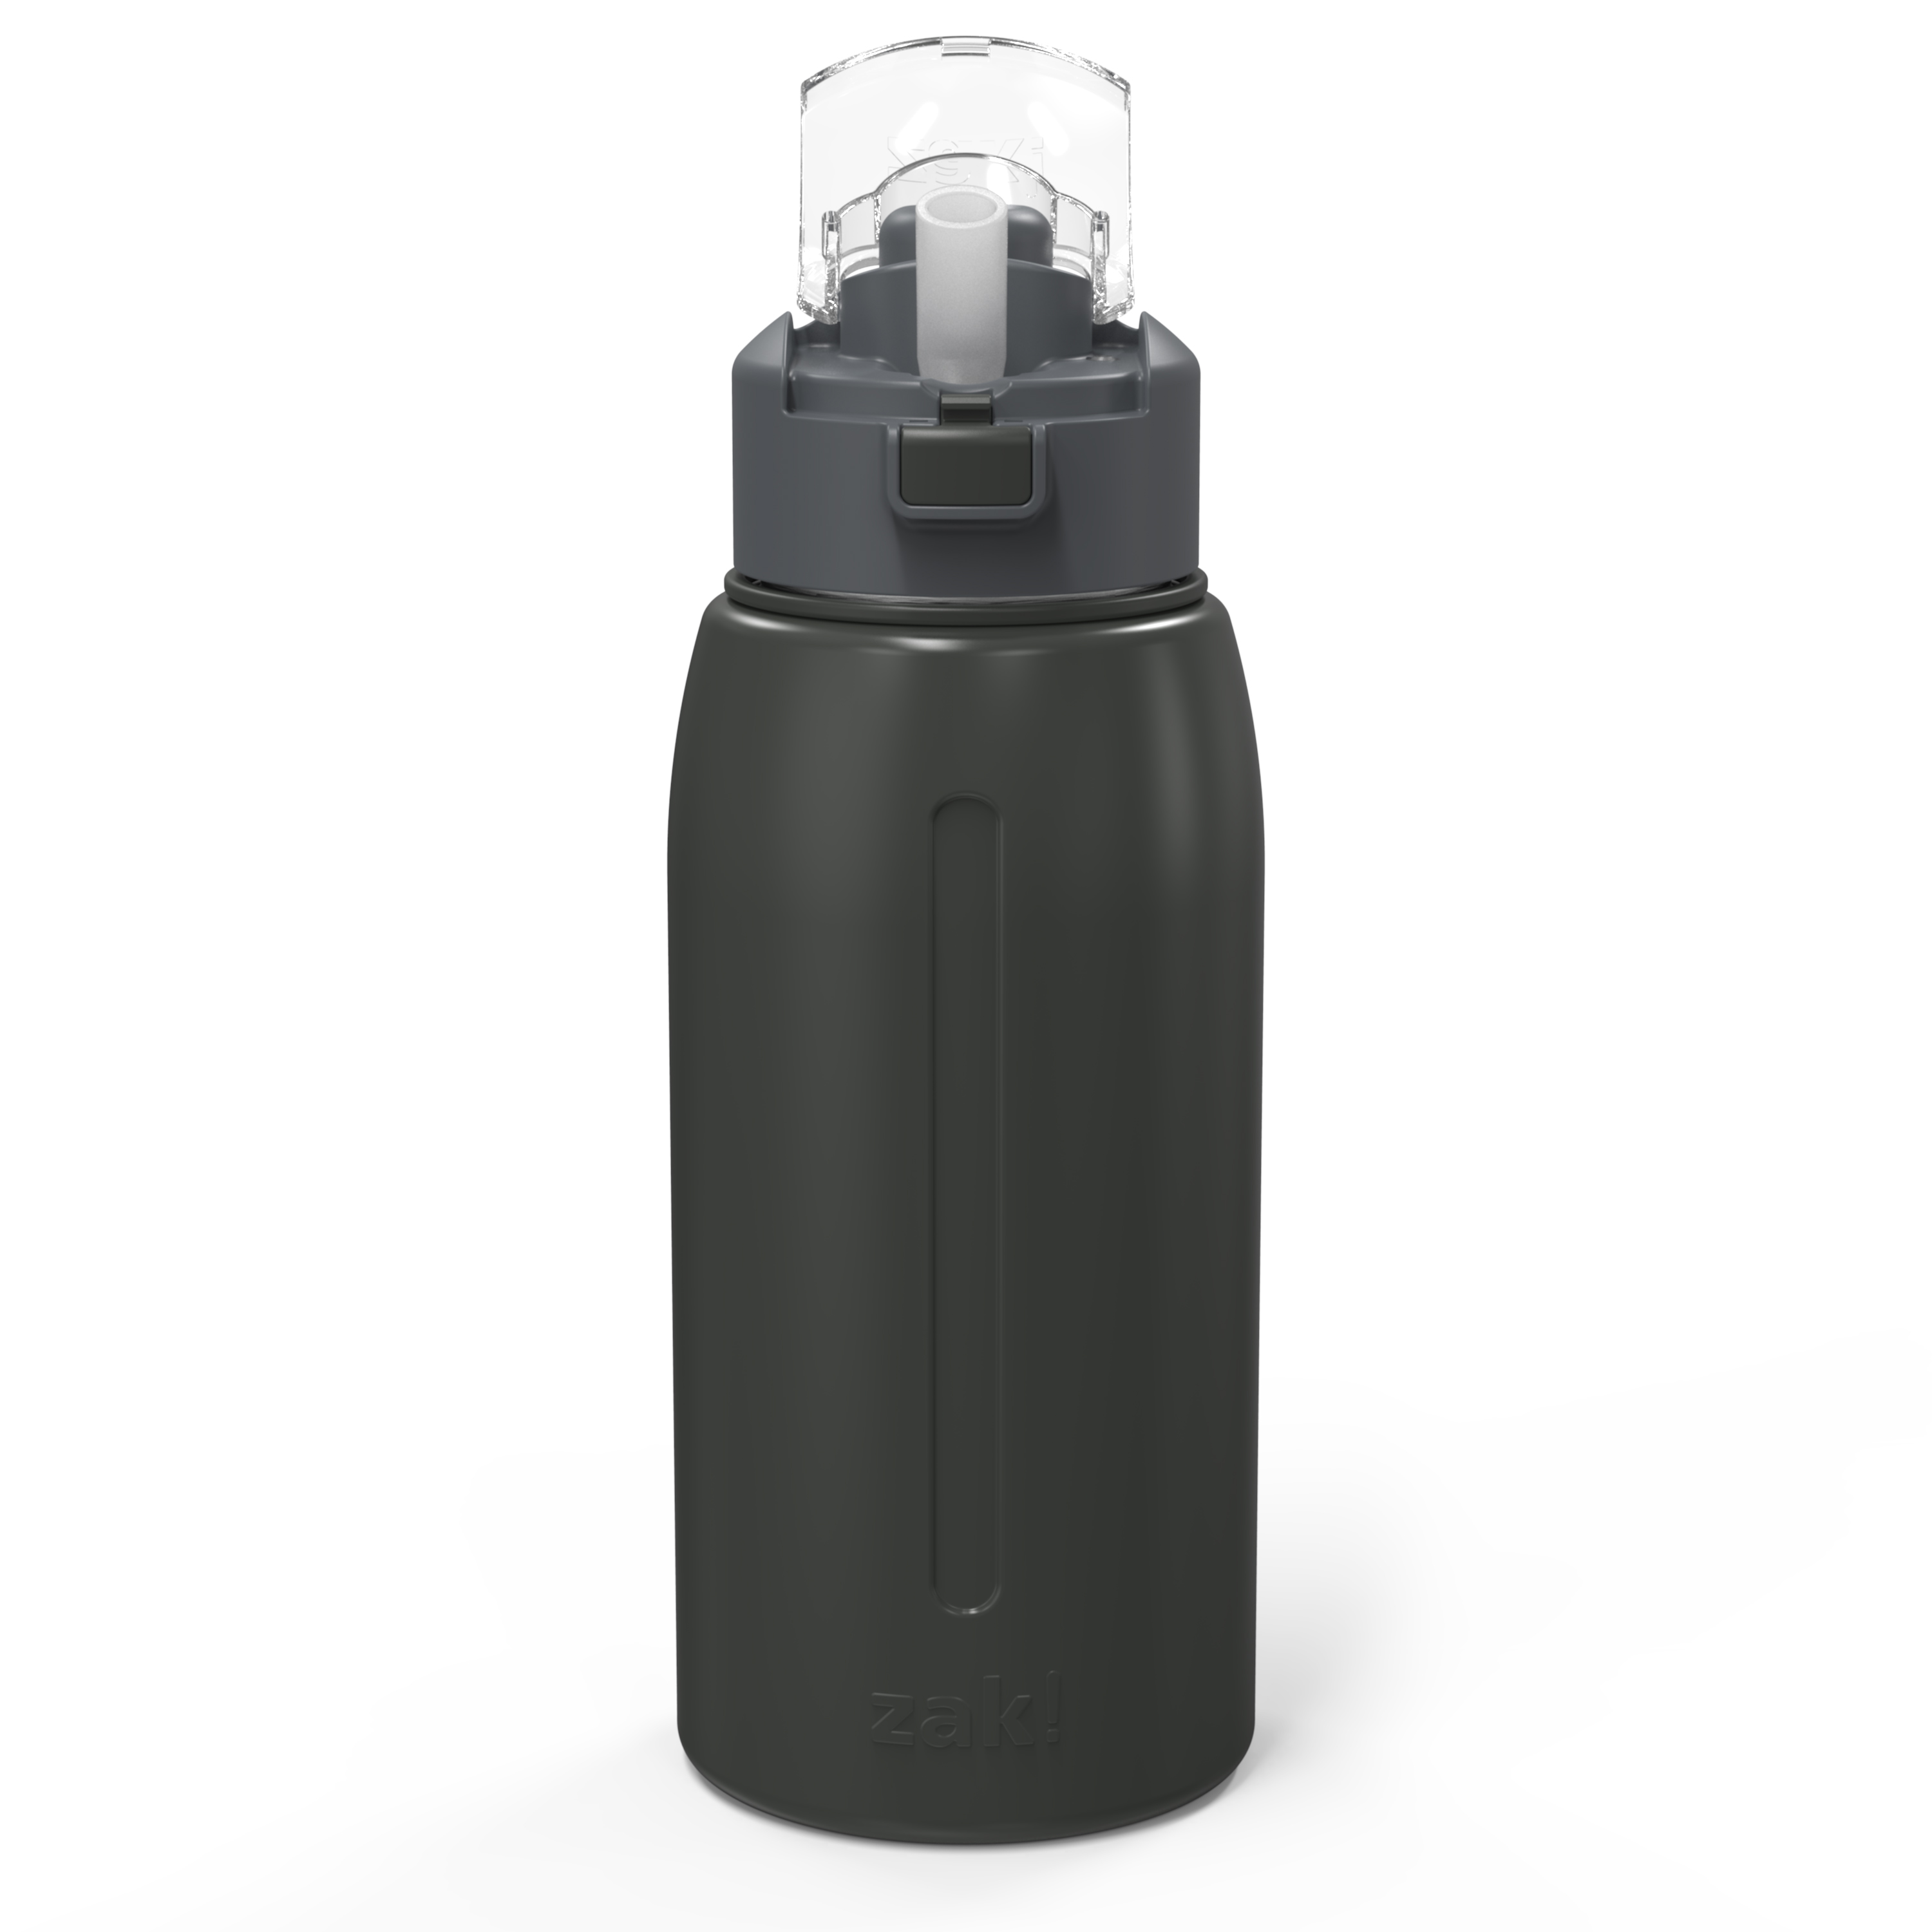 Genesis 32 ounce Vacuum Insulated Stainless Steel Tumbler, Charcoal slideshow image 6